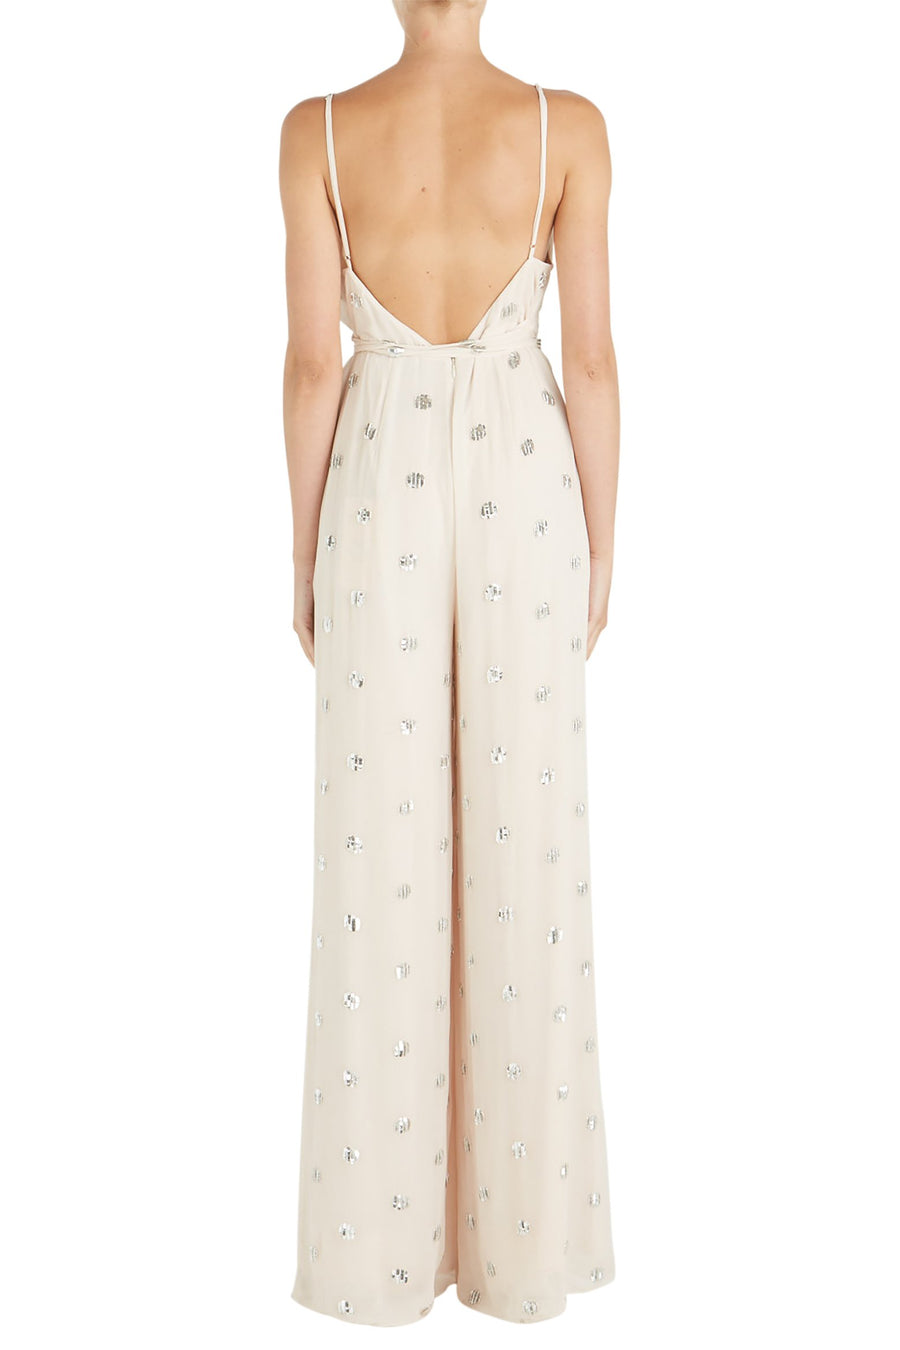 Alexis Cosmina Jumpsuit in Embellished Cream from The New Trend